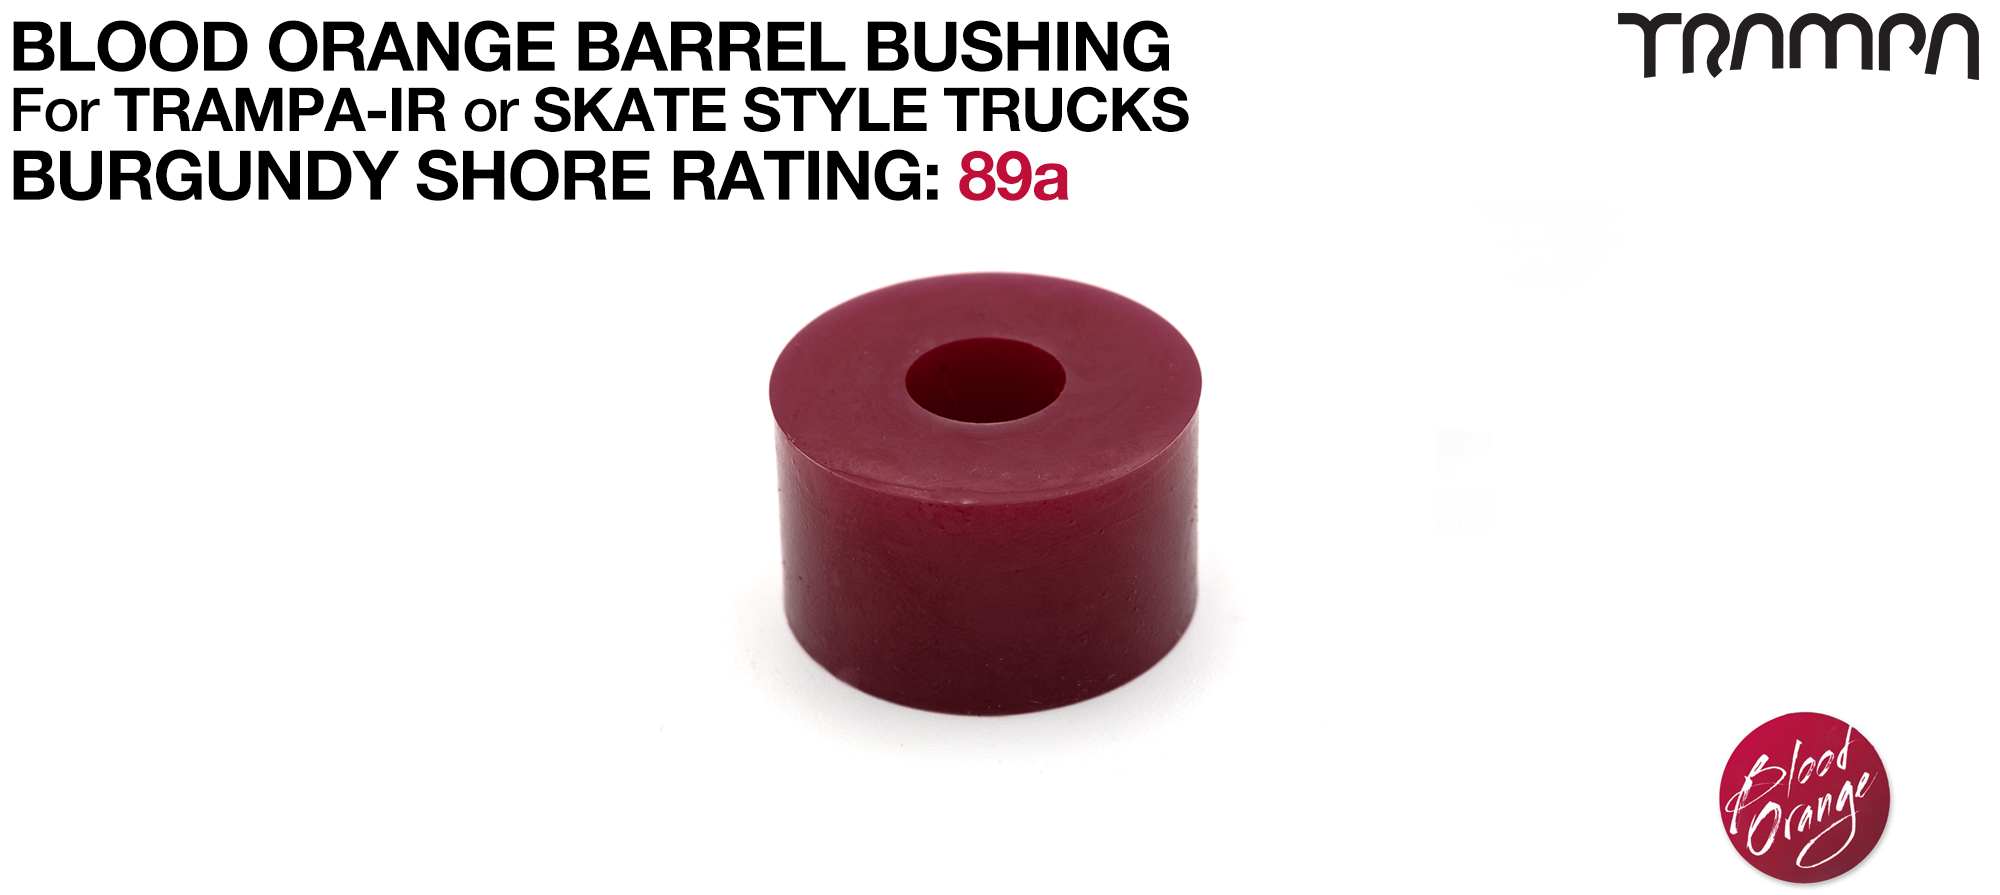 Blood Orange Bushings 92a Lubricated Internal Barrel Set - YELLOW